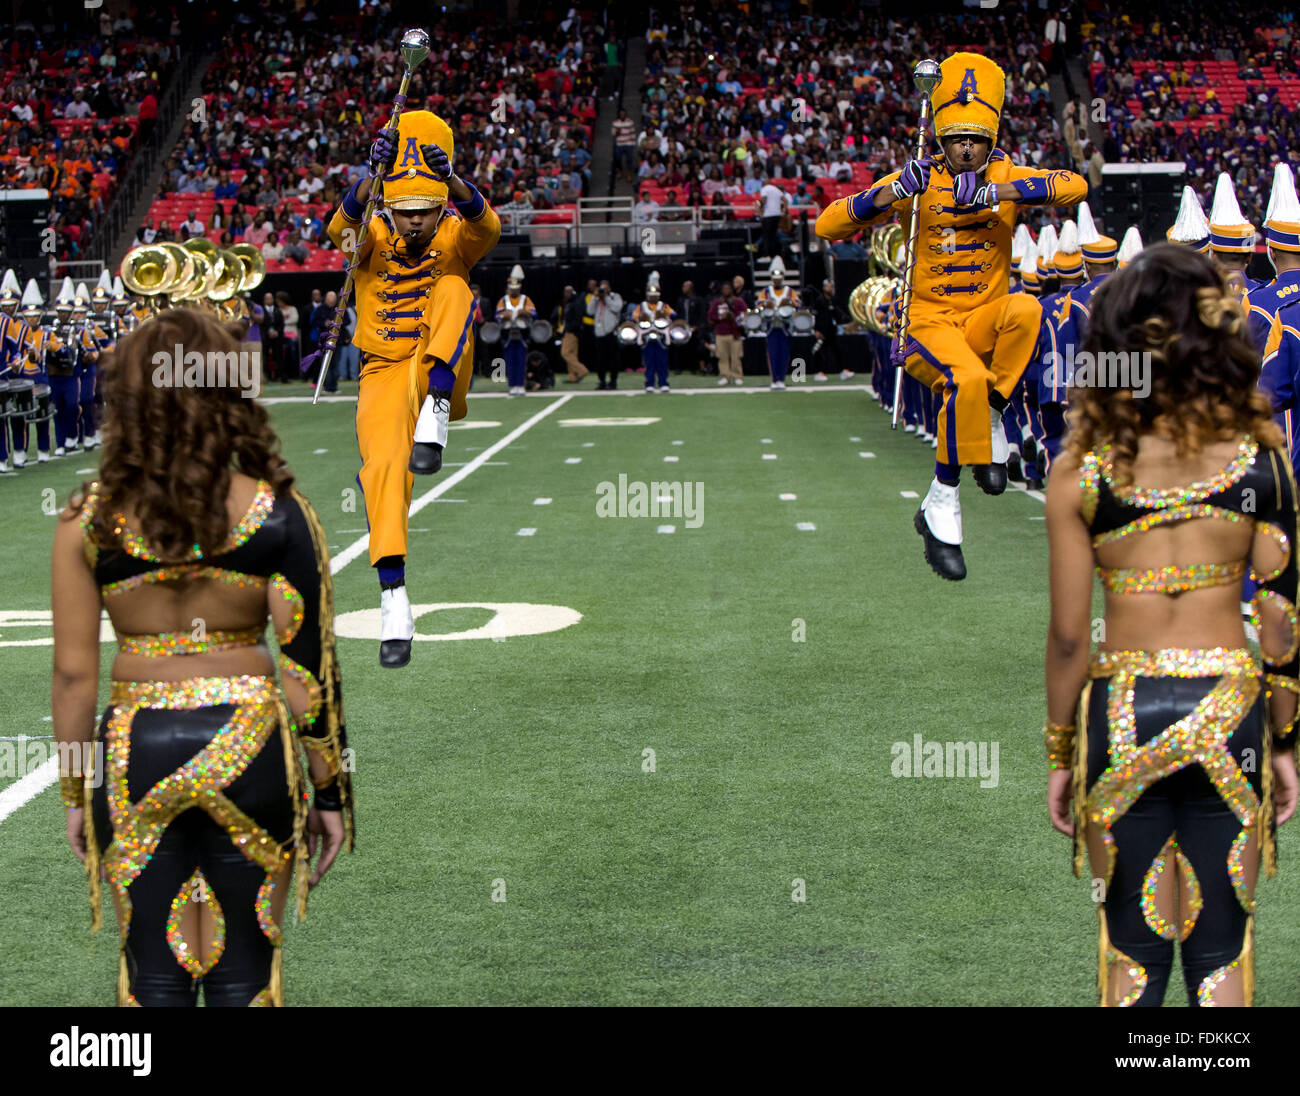 Alcorn State Stock Photos & Alcorn State Stock Images - Alamy